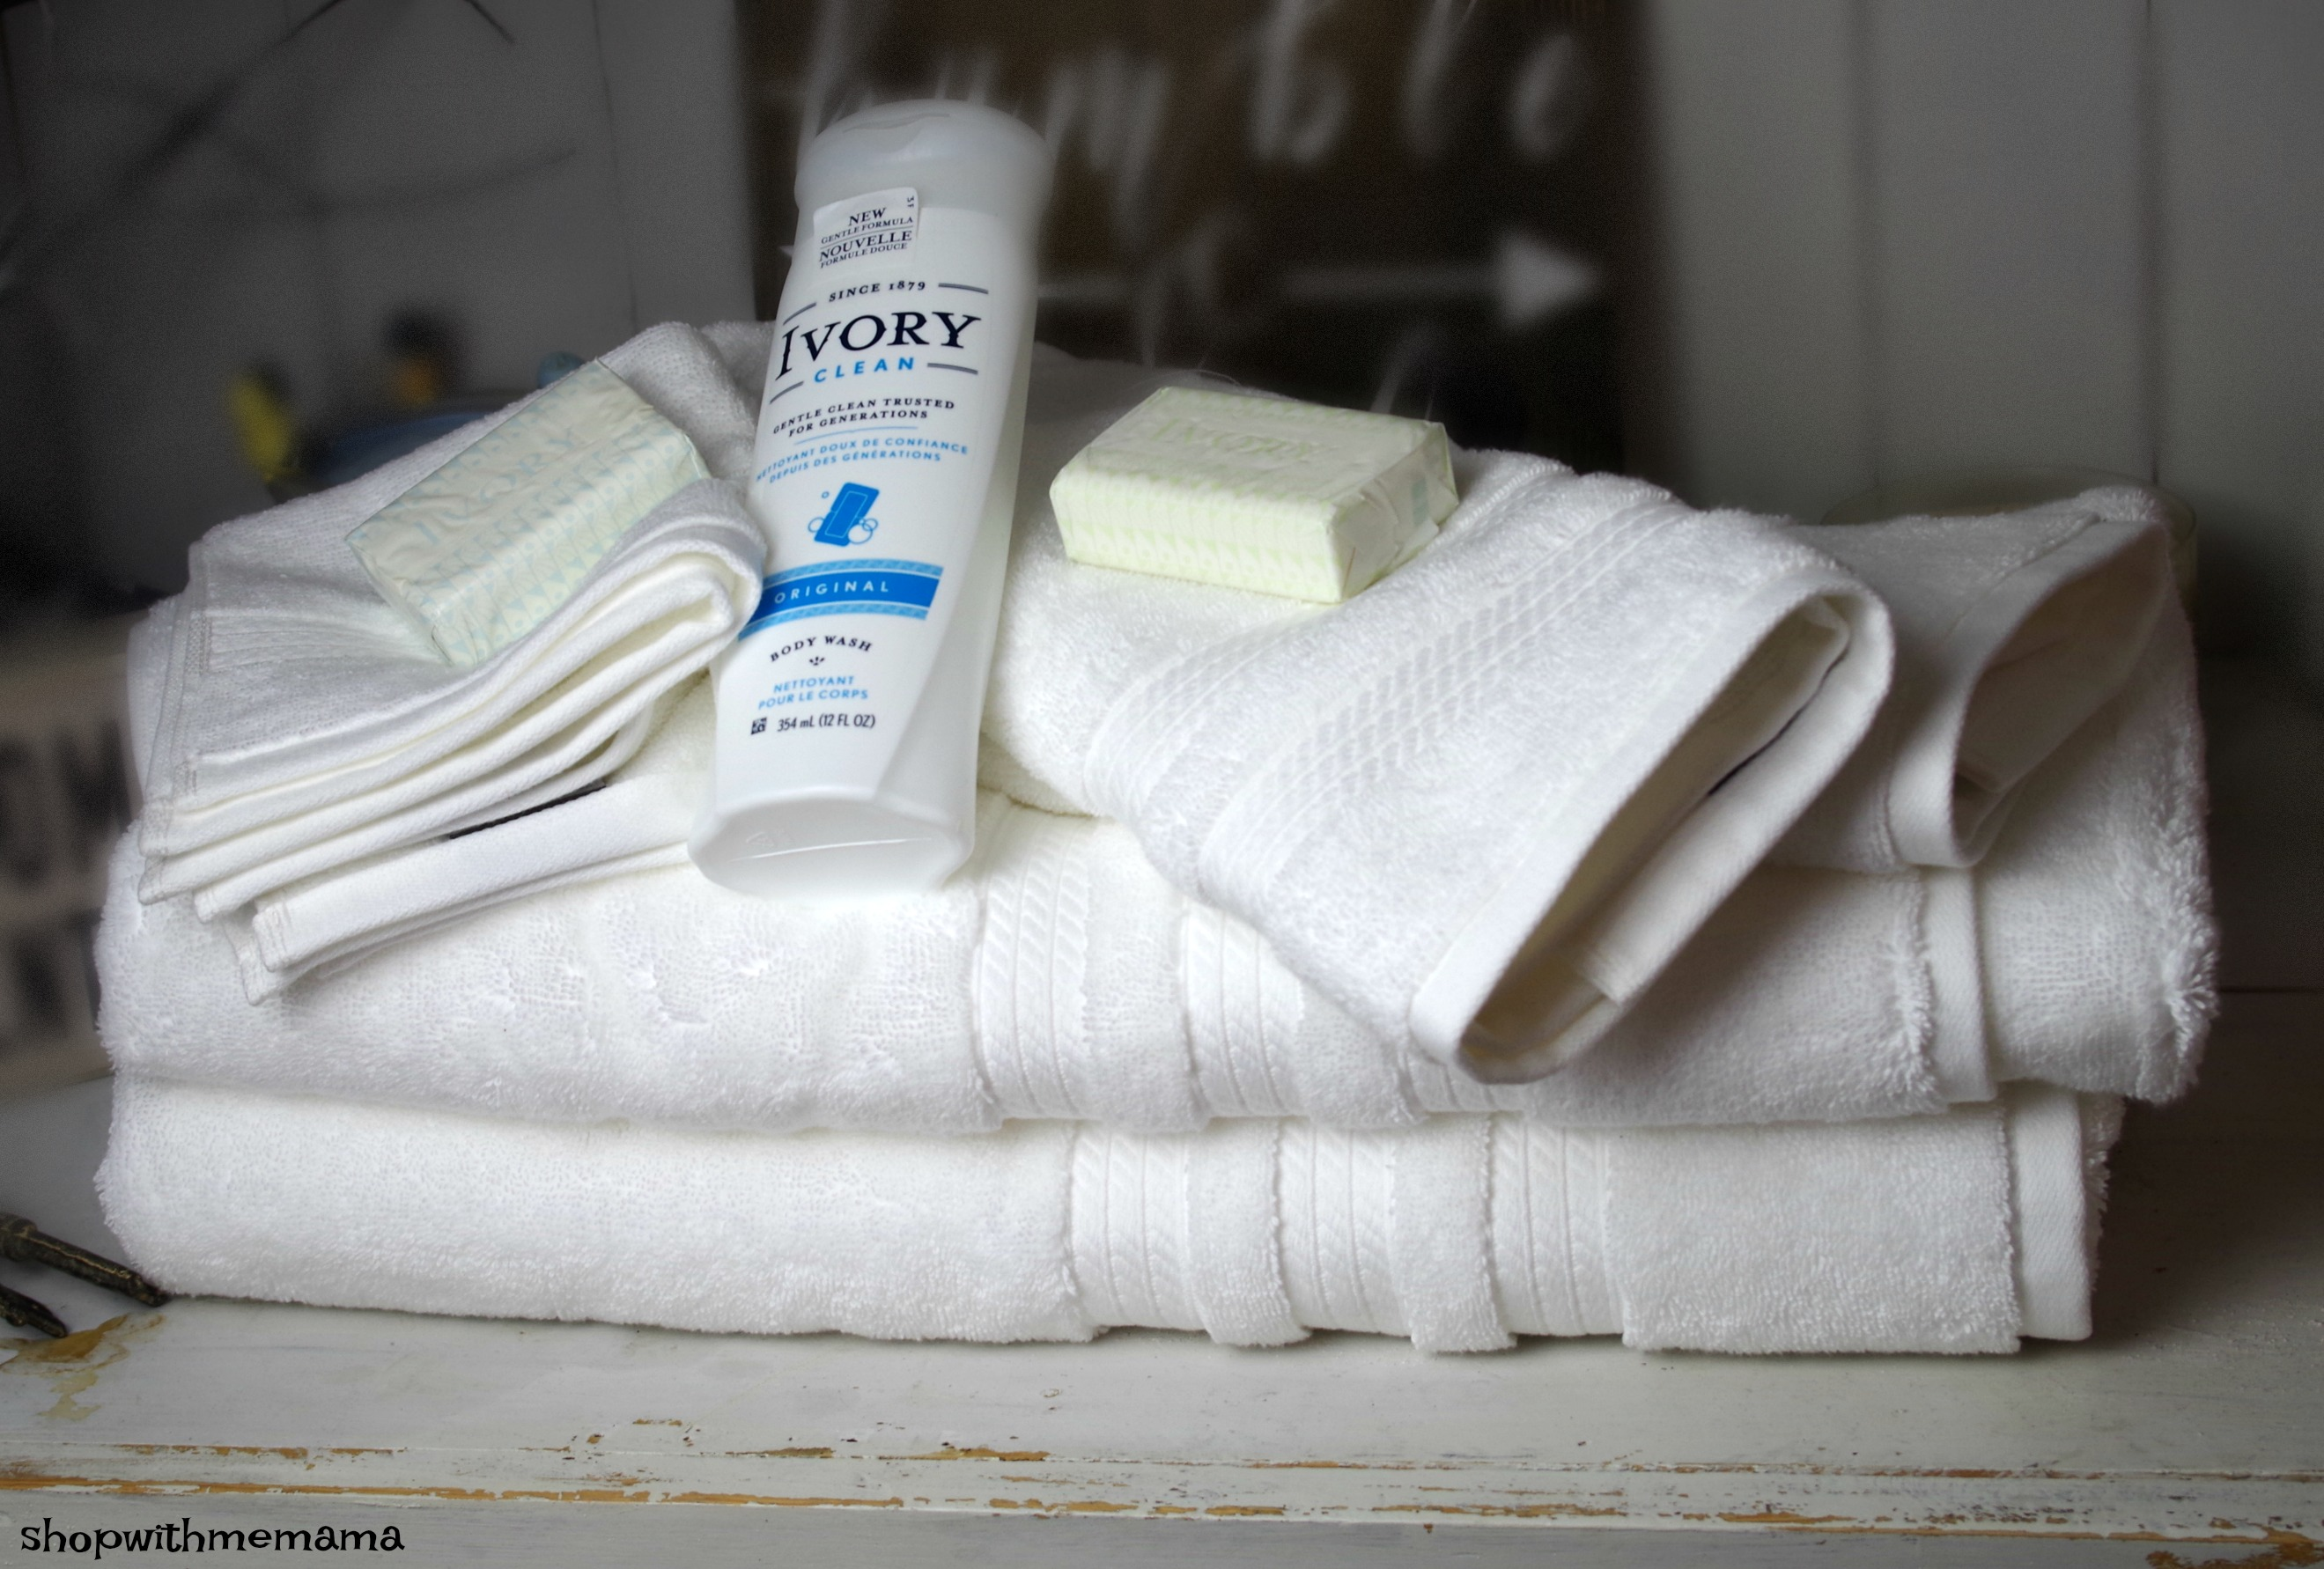 Ivory Provides A Pure Simple Clean For The Whole Family